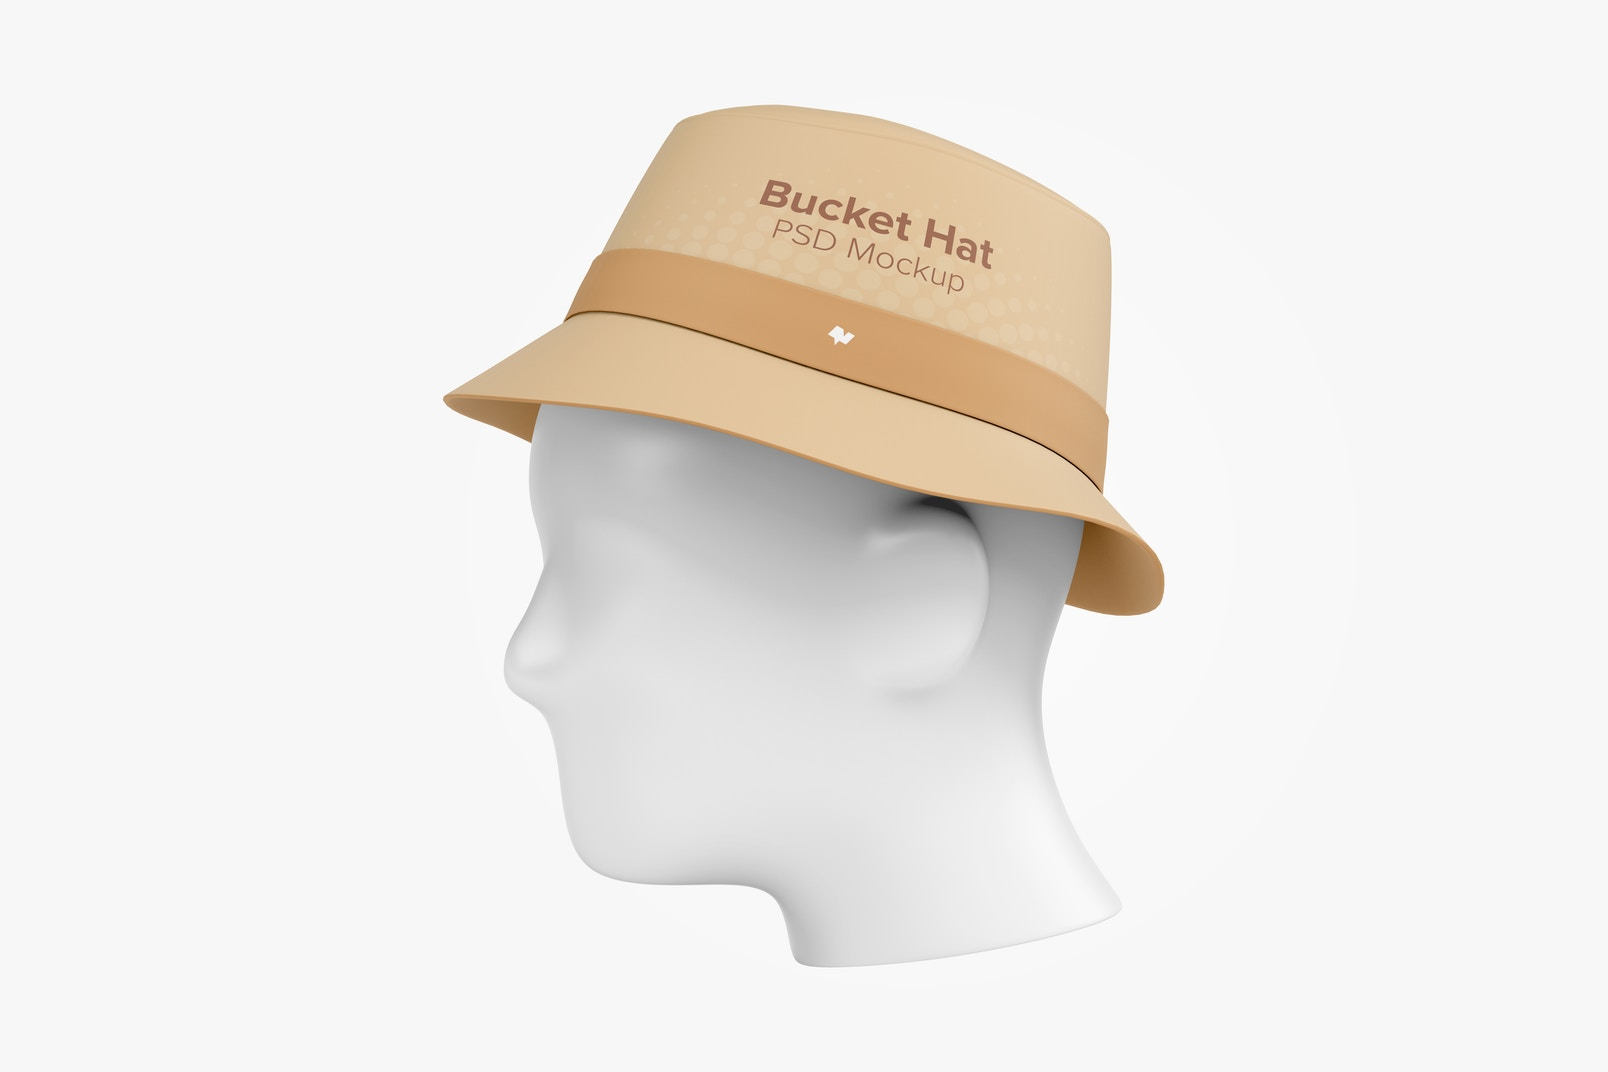 Bucket Hat Mockup, Right View